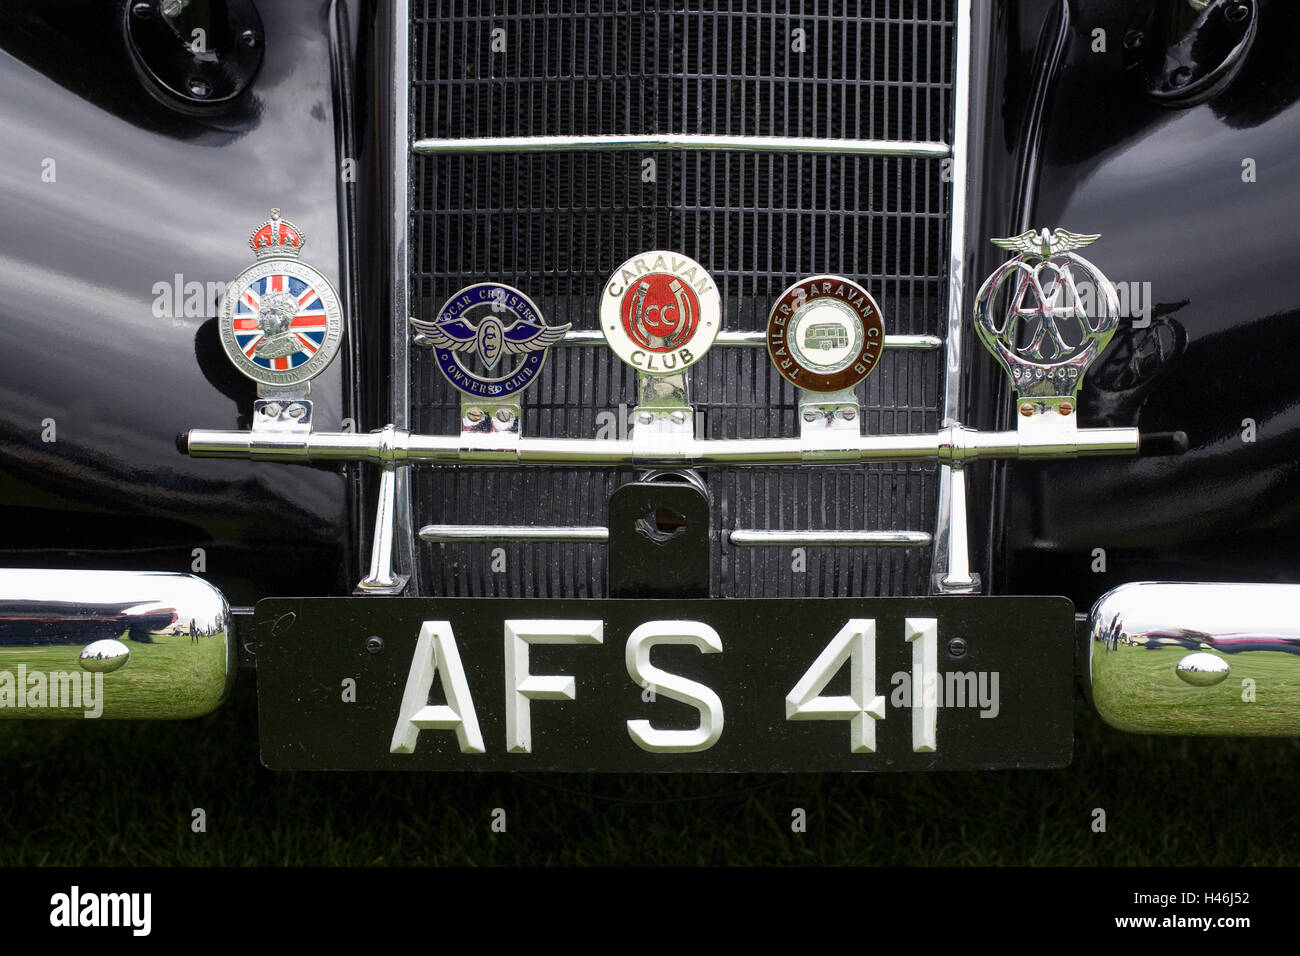 Car badges on the front of a 1936 Hillman 16. - Stock Image